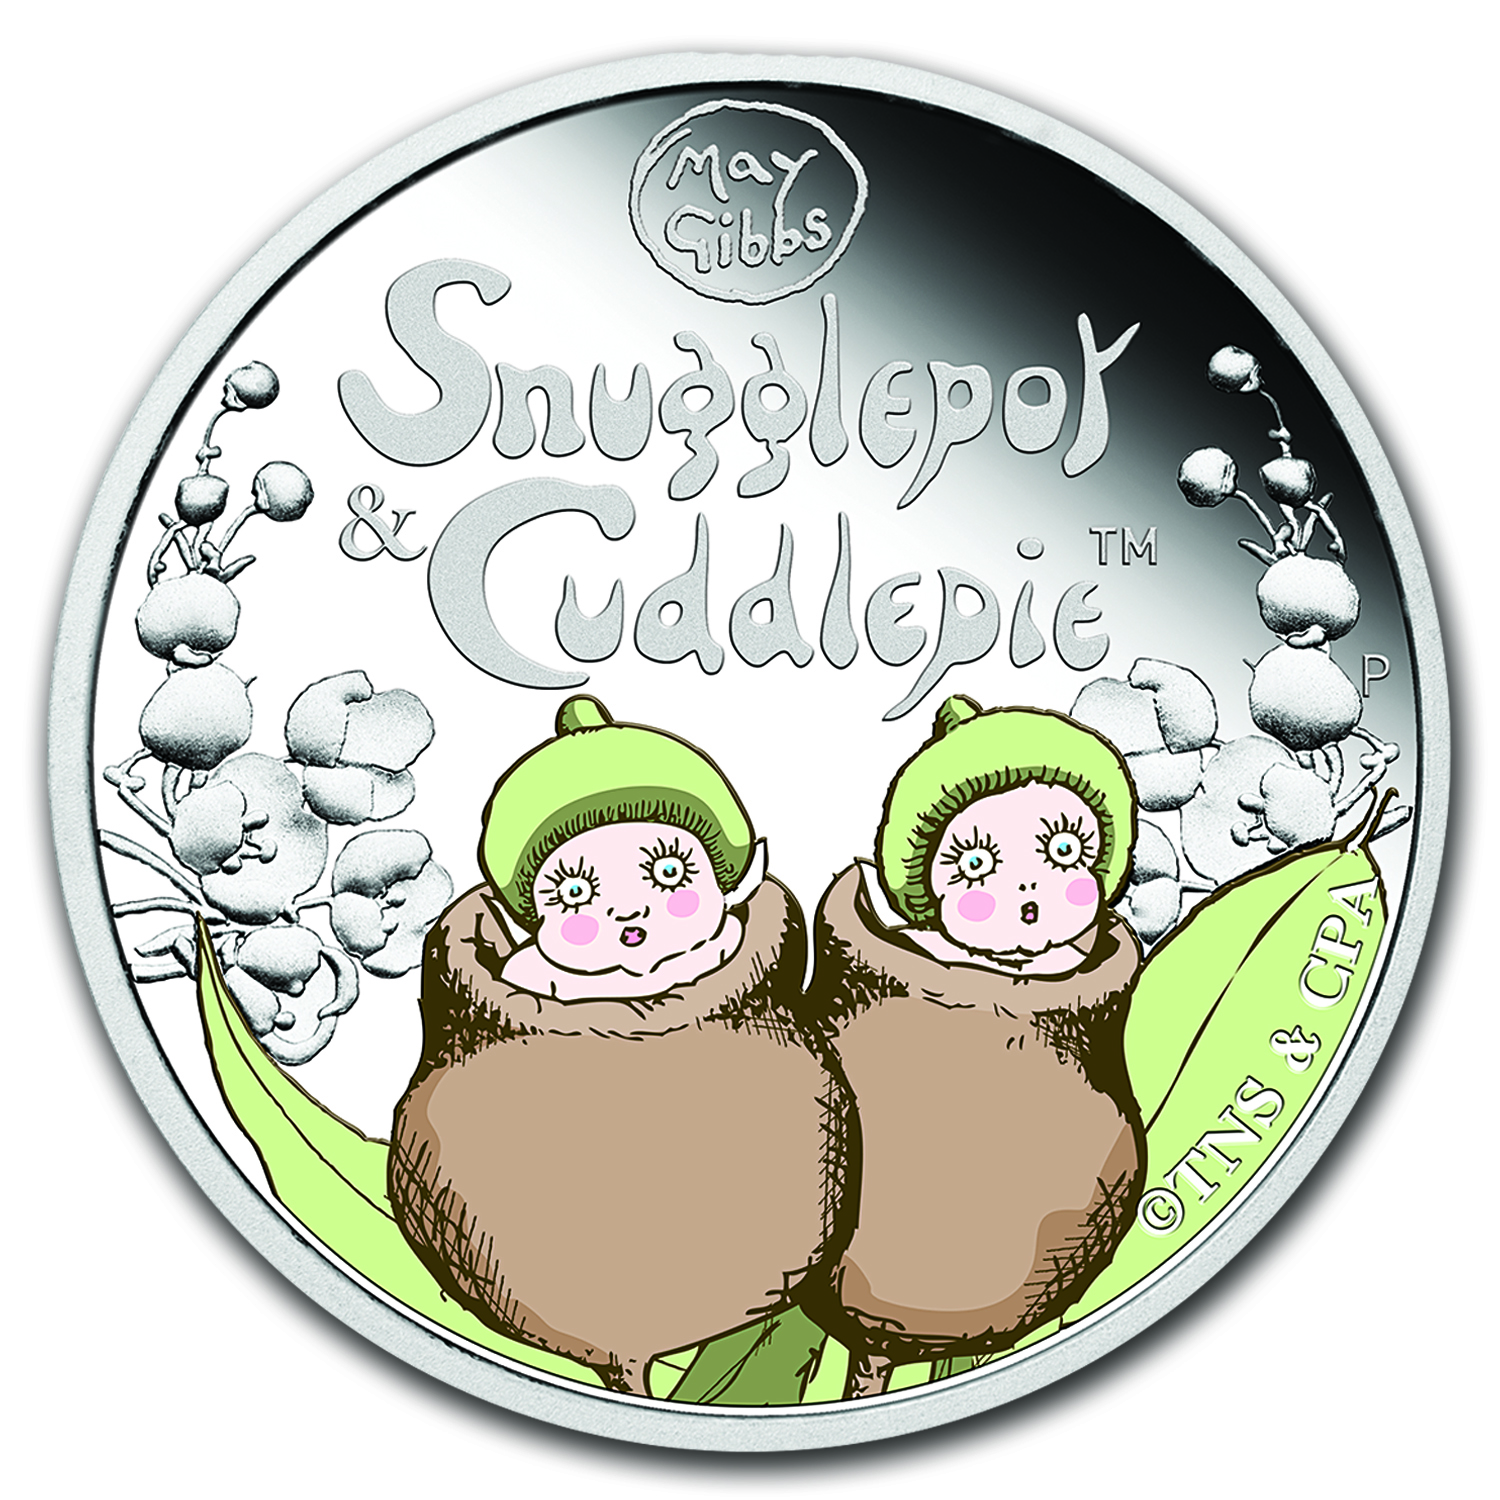 2016 Australia 1/2 oz Silver Snugglepot and Cuddlepie Proof